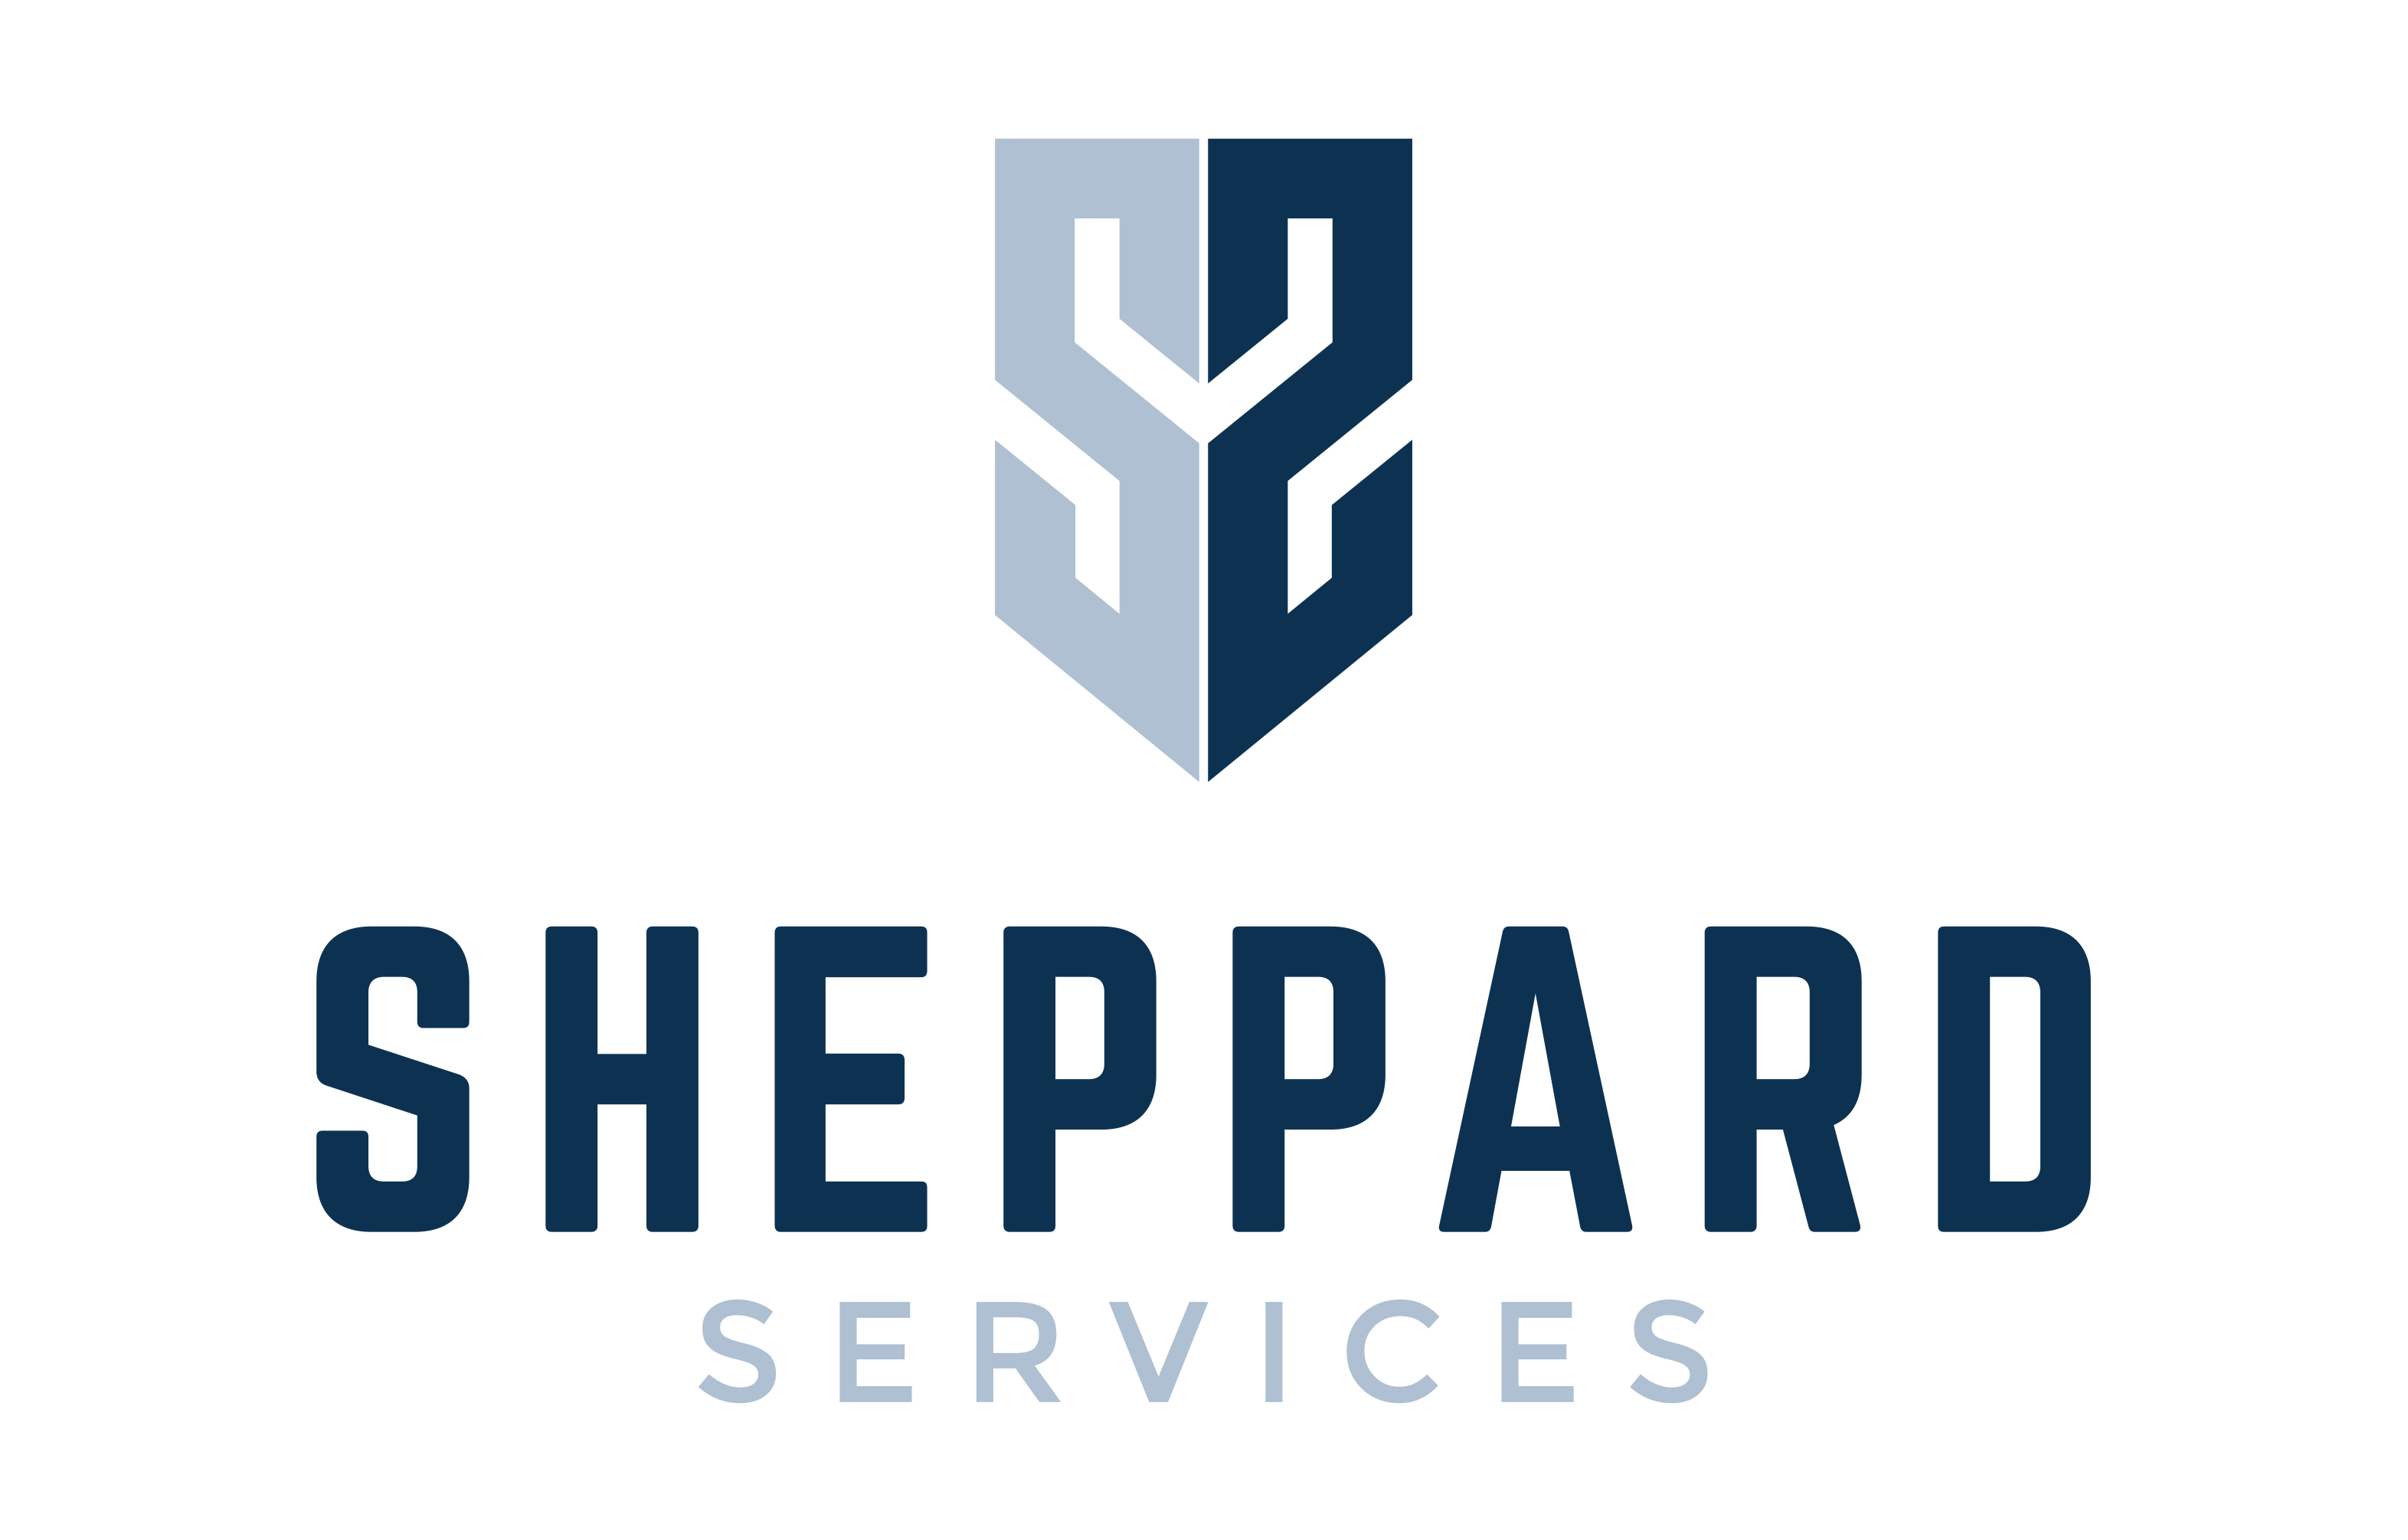 Sheppard Services